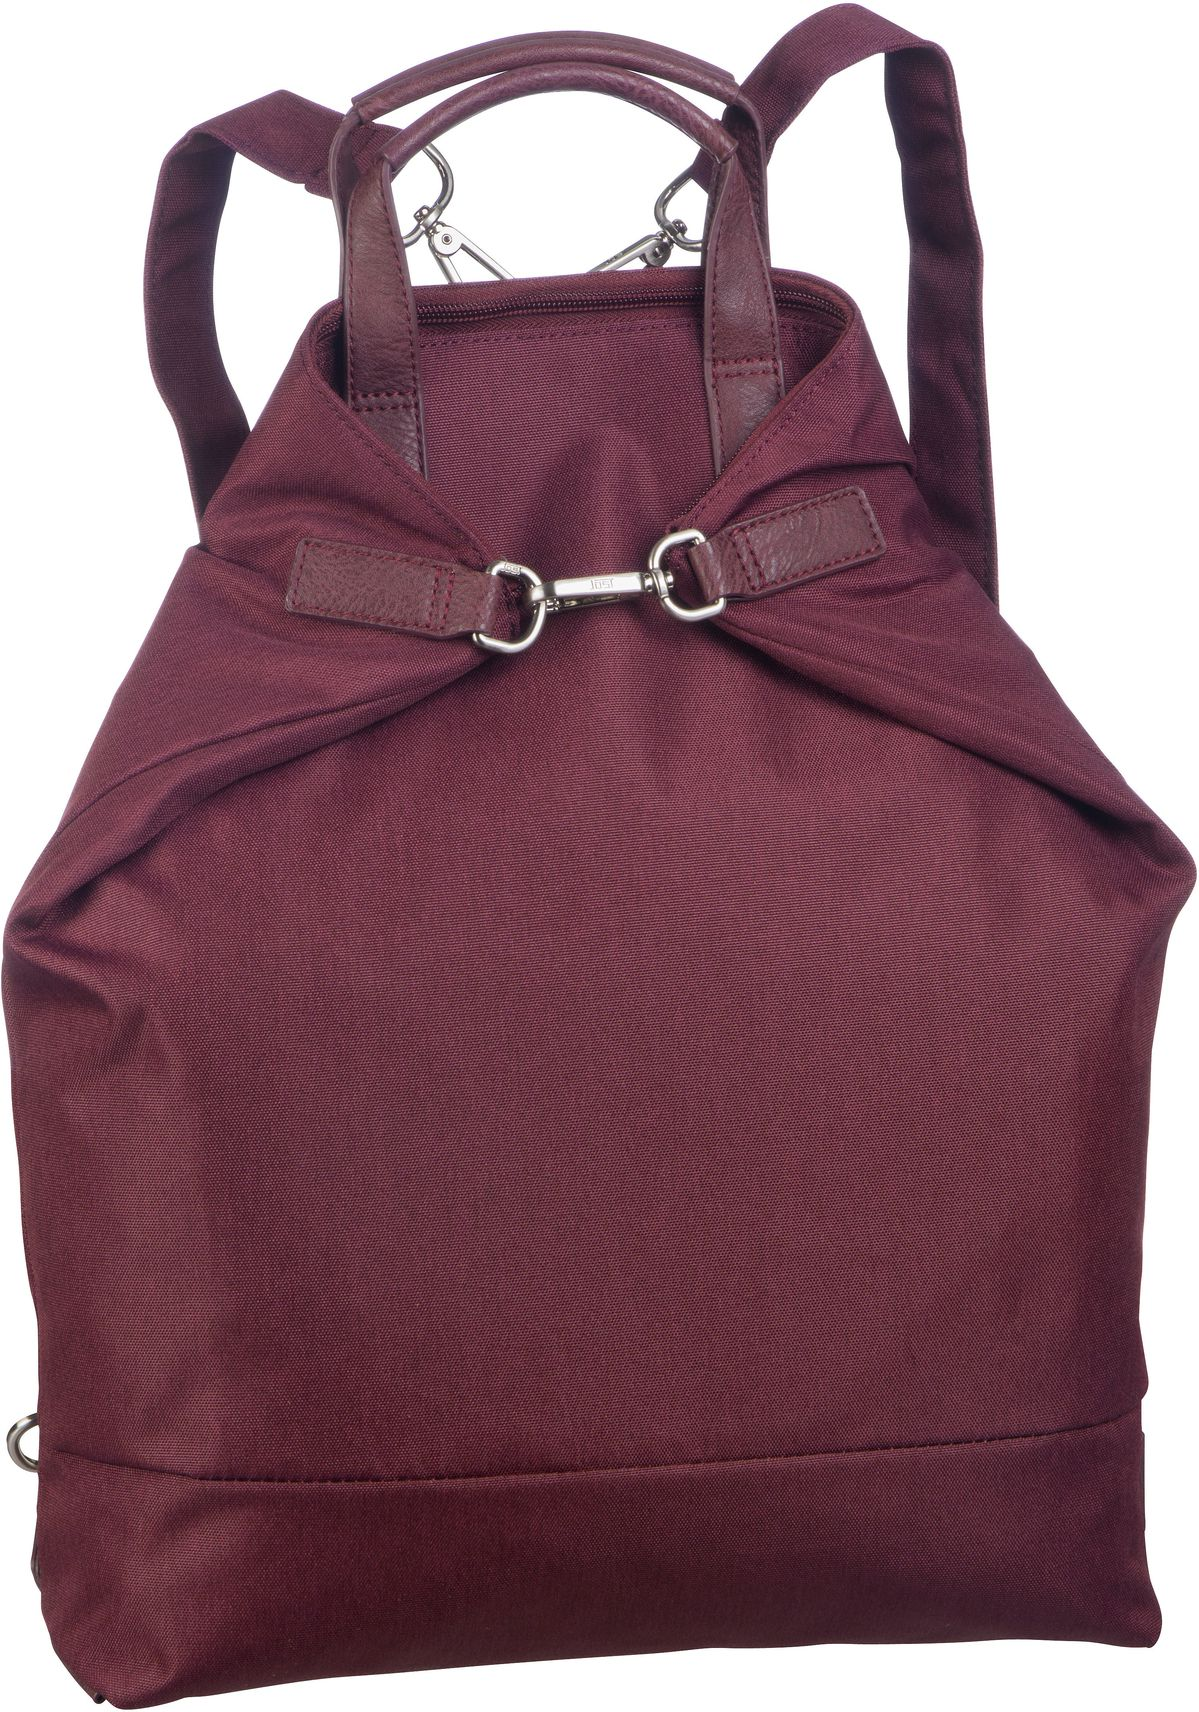 Jost Rucksack / Daypack 1105 X-Change Bag M Bordeaux